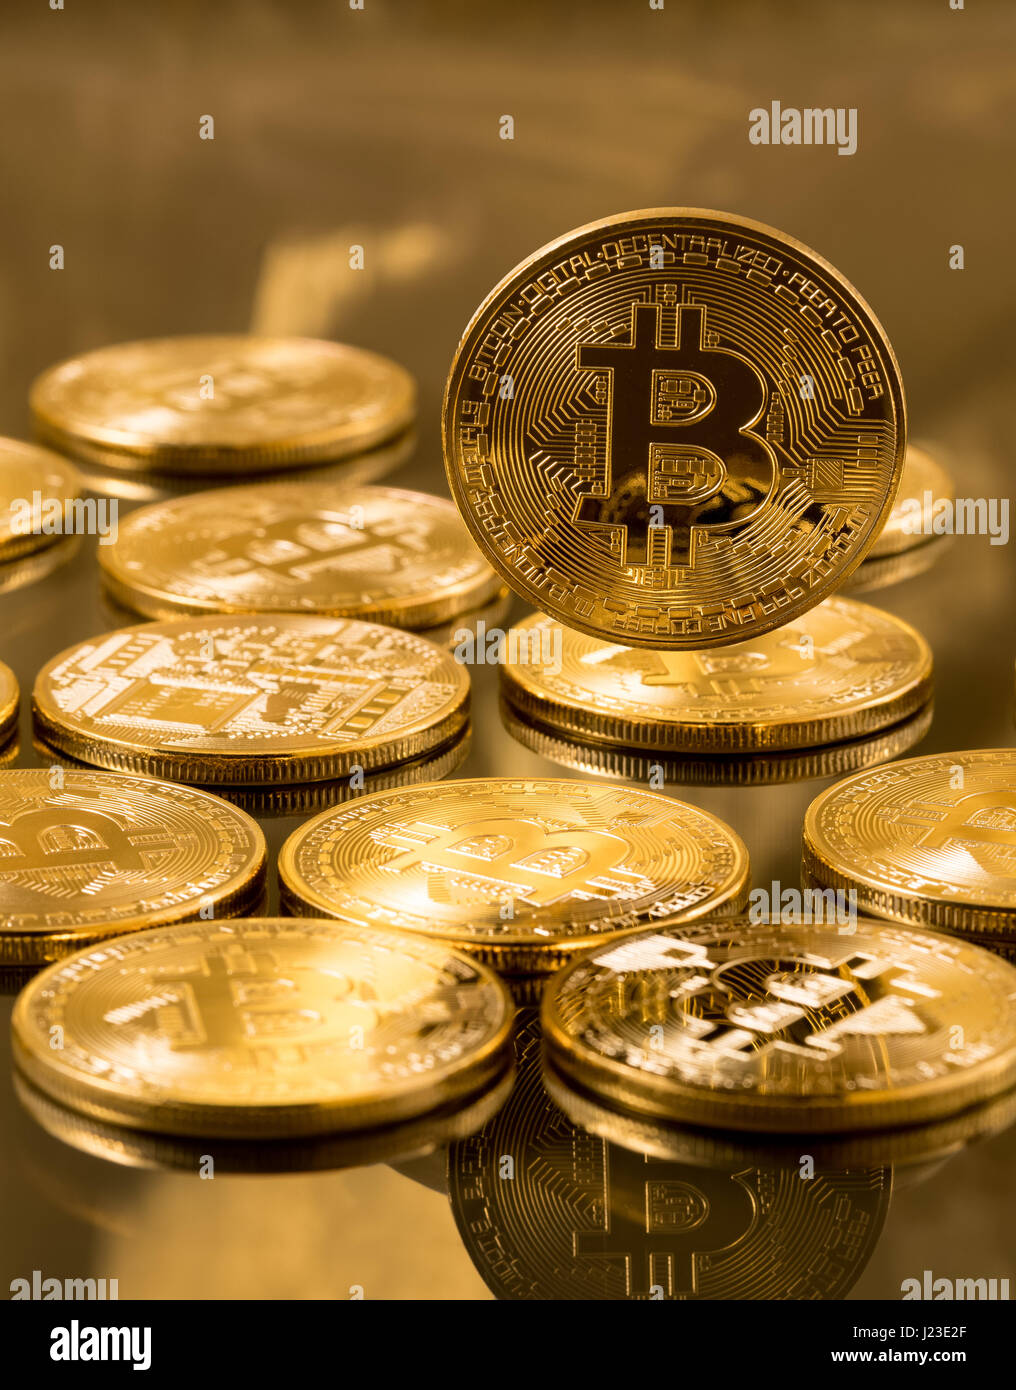 Stack of bitcoins on gold background - blockchain and cyber currency concept - Stock Image